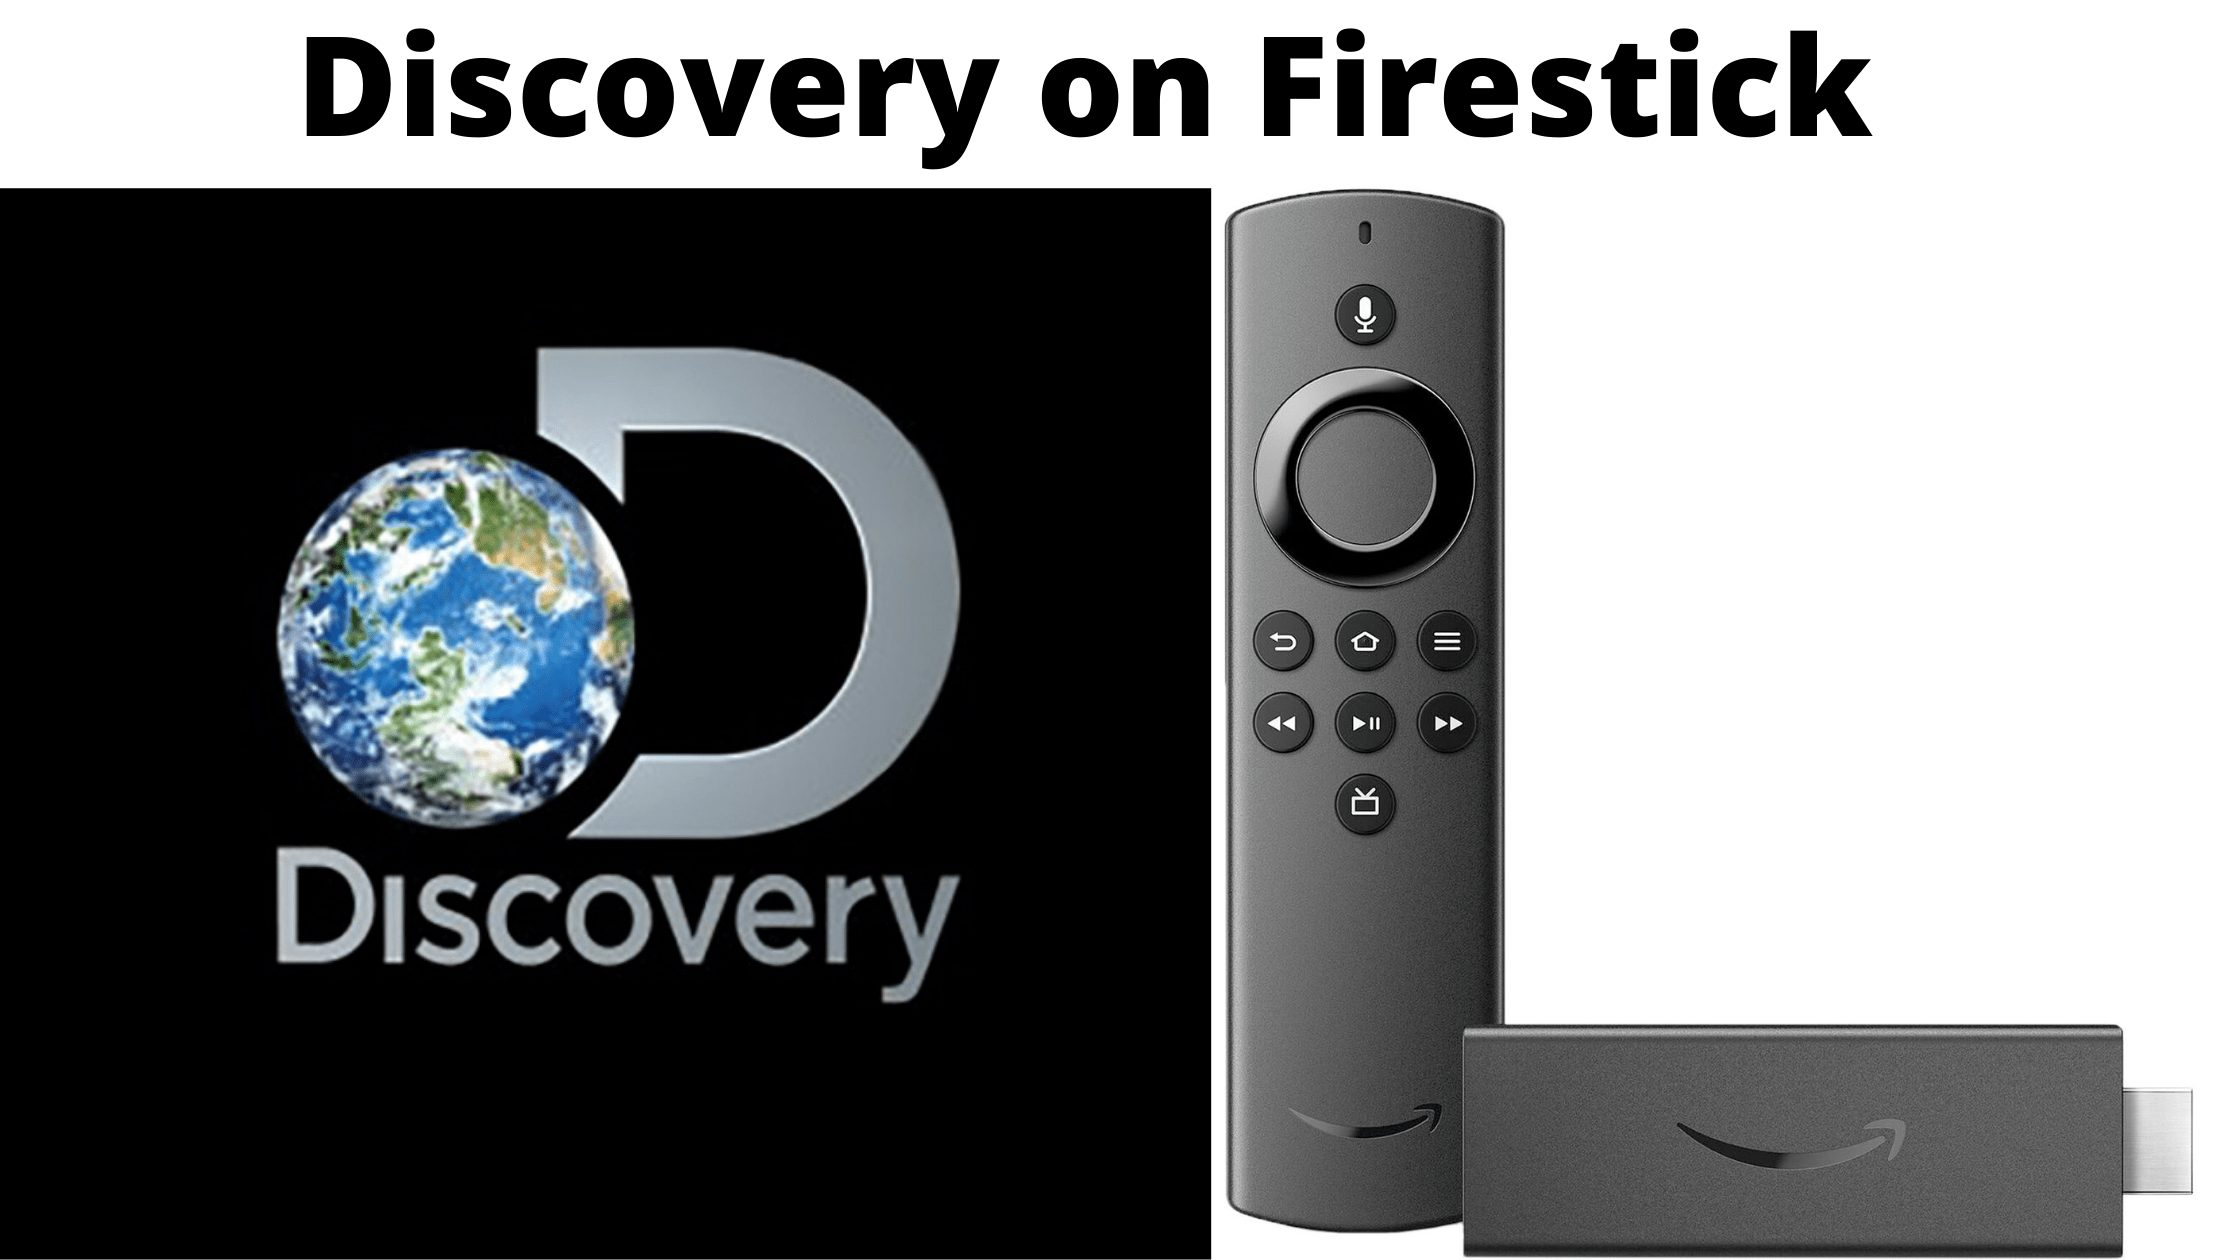 Discovery on Firestick